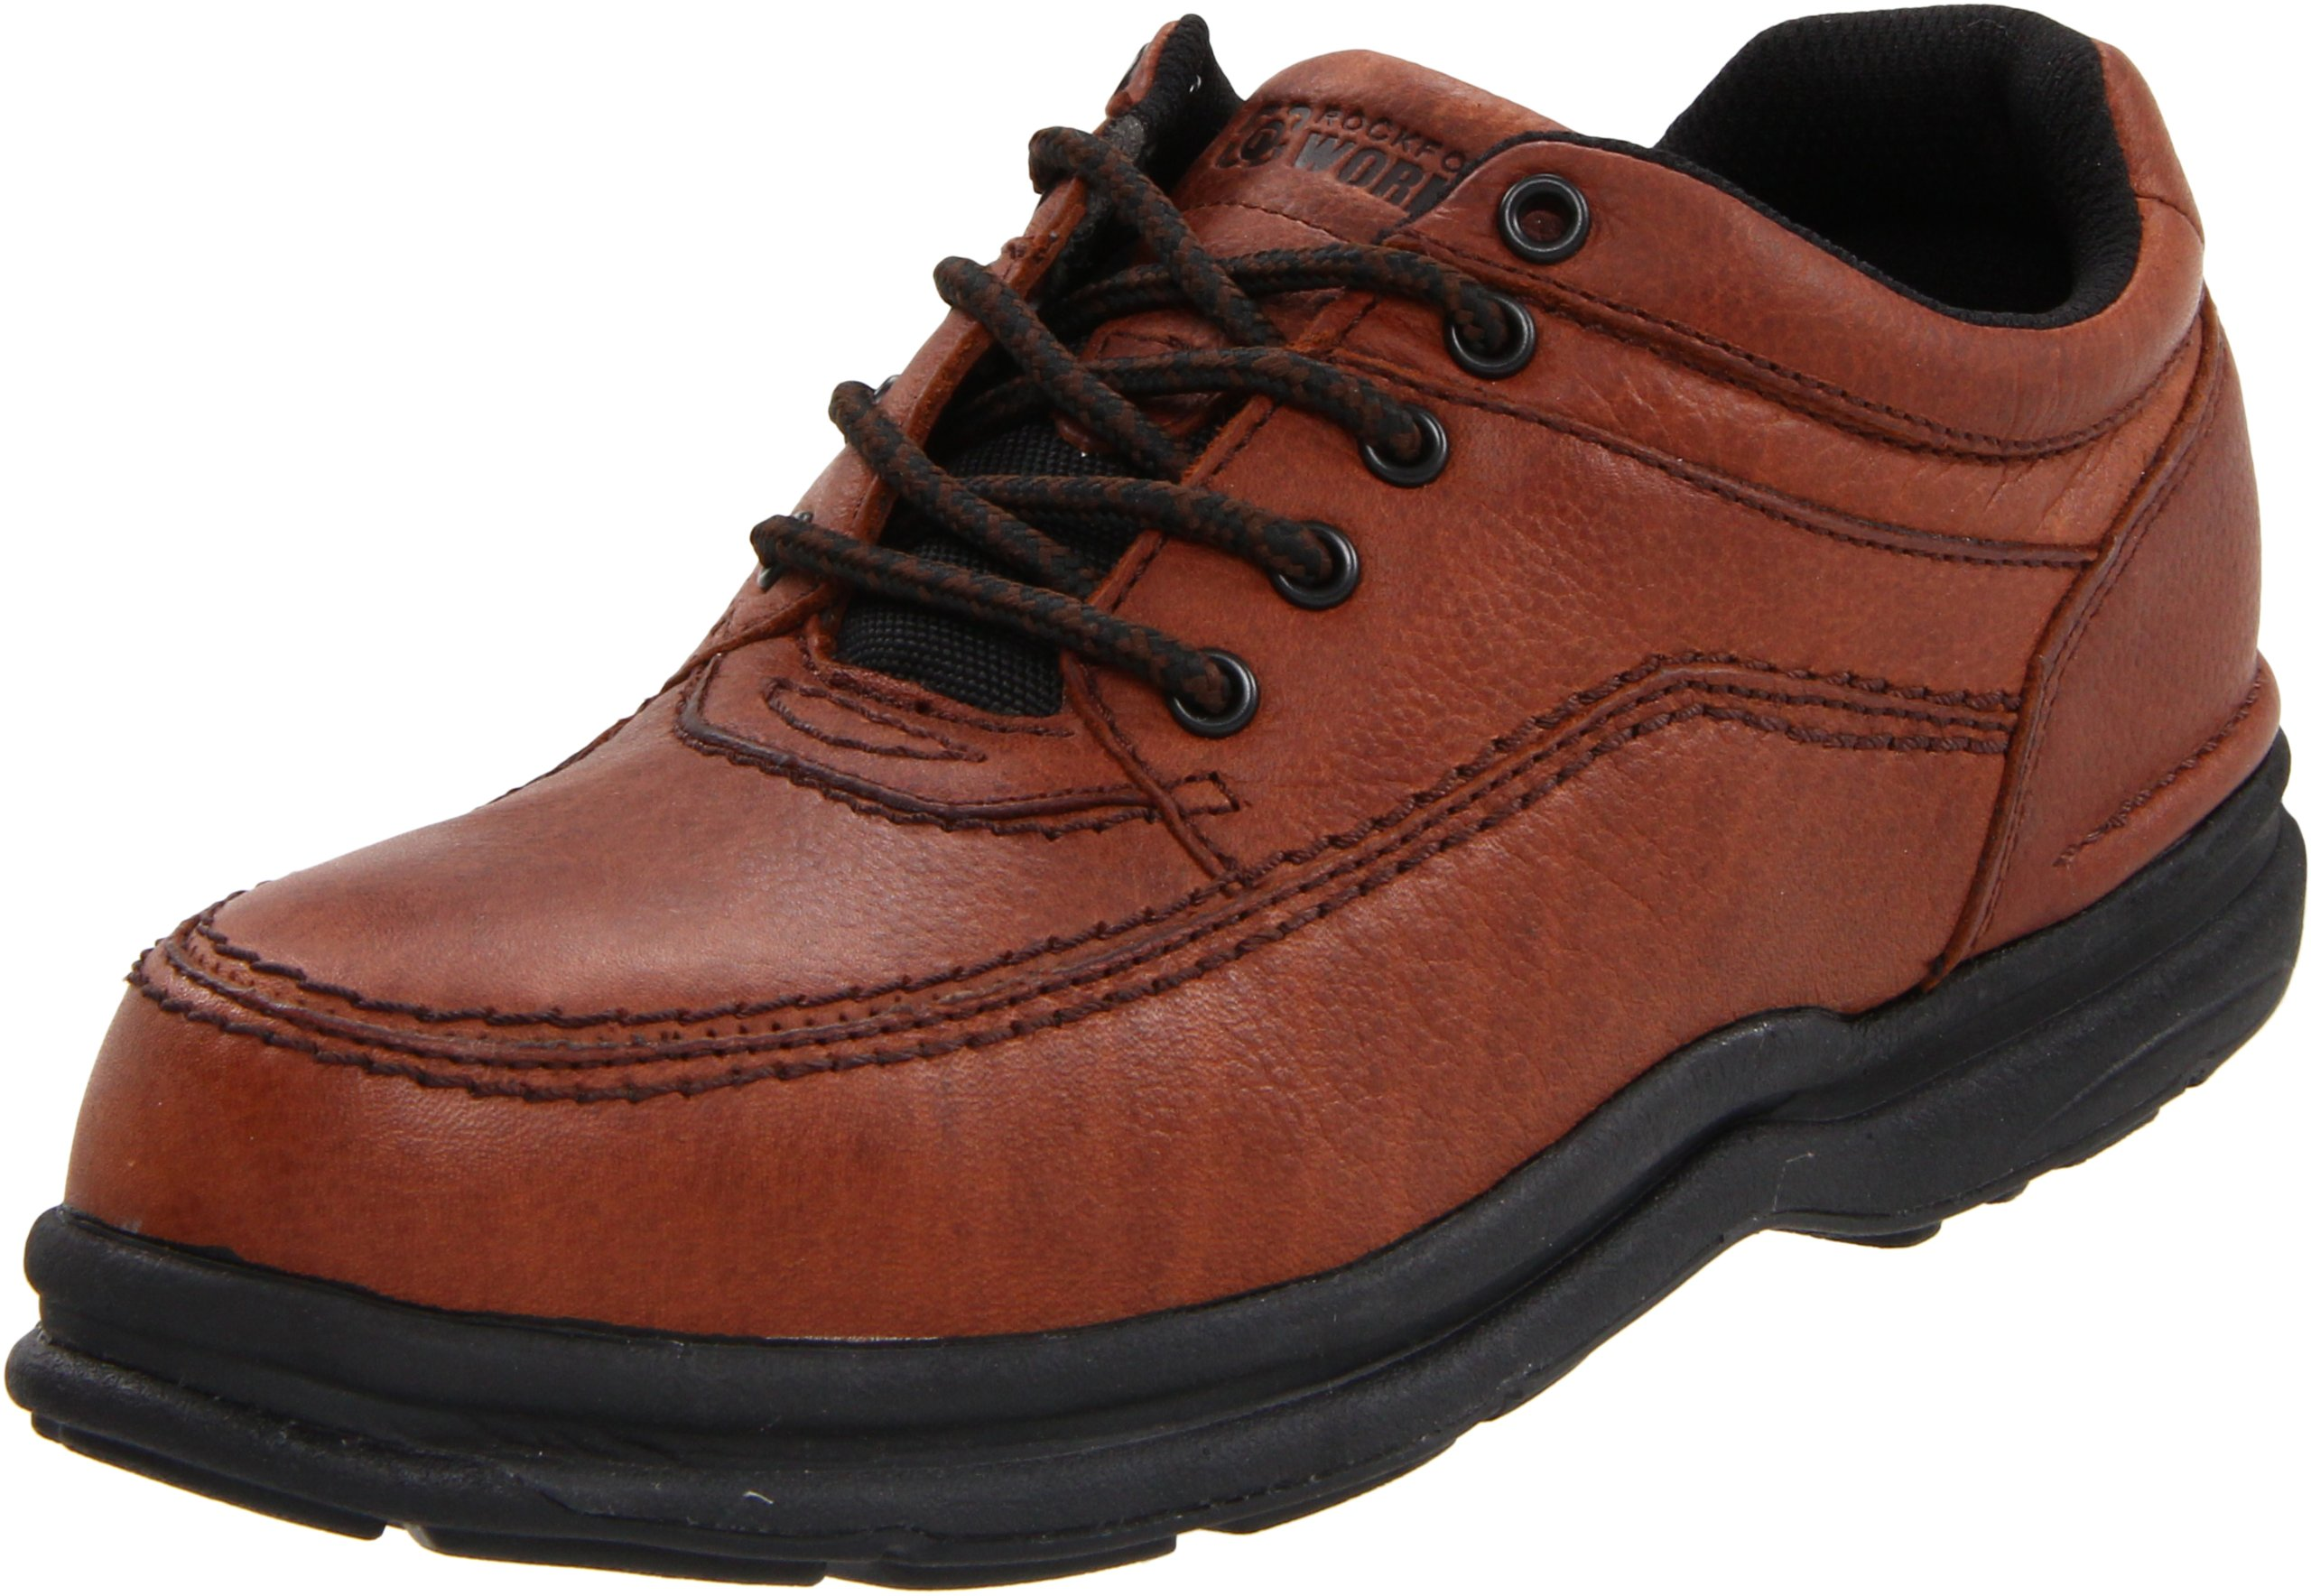 Rockport Work Men's RK6762 Work Shoe,Brown,9.5 W US